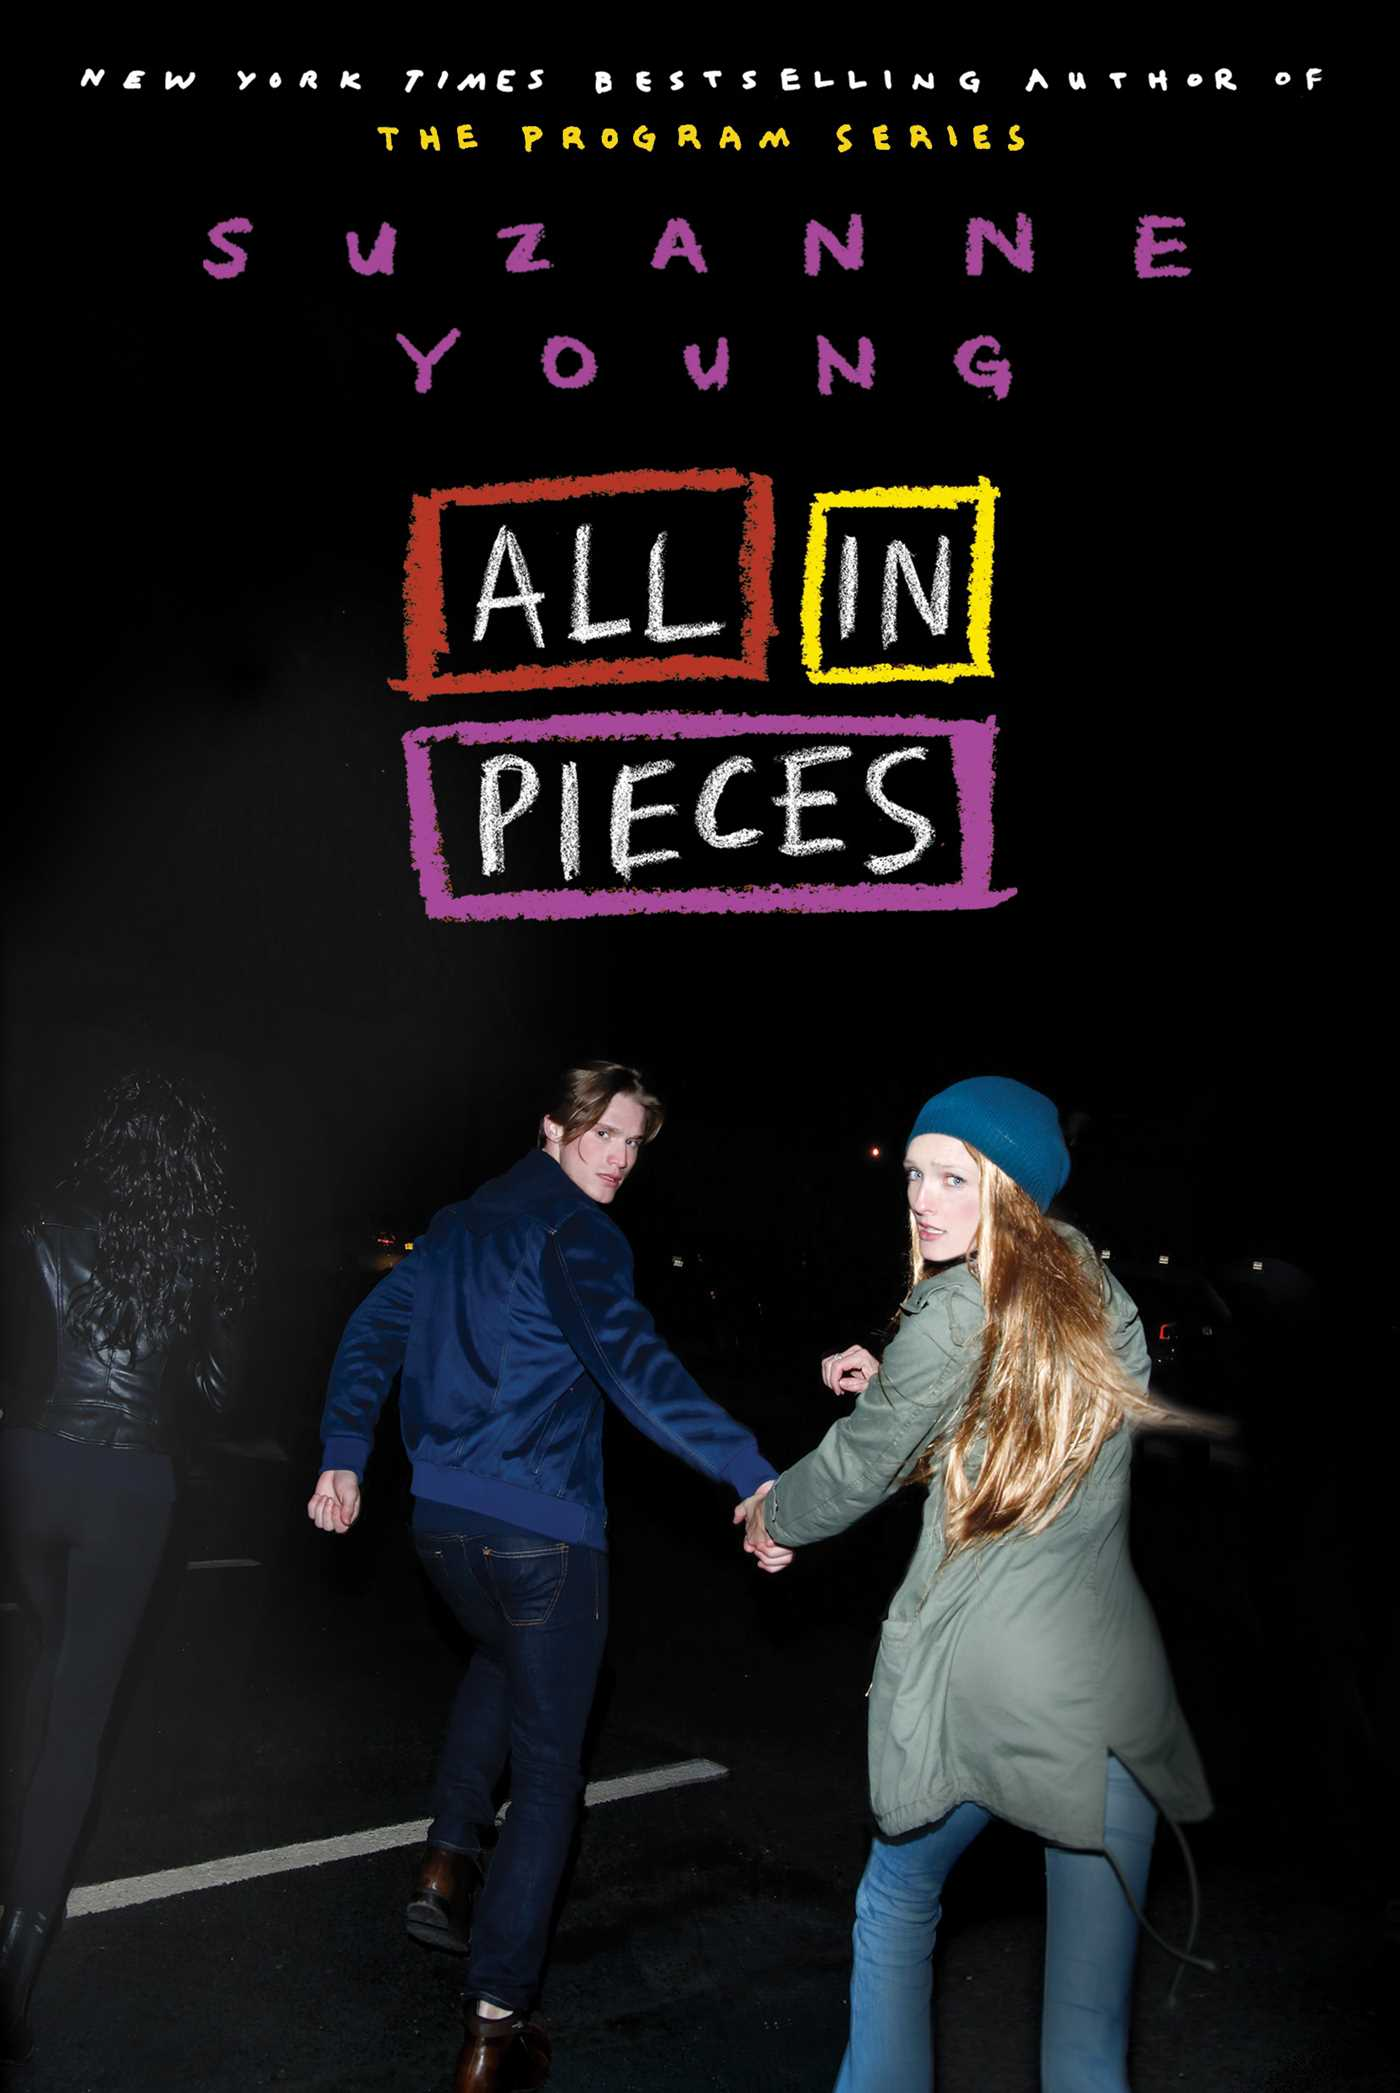 All in pieces 9781481418843 hr